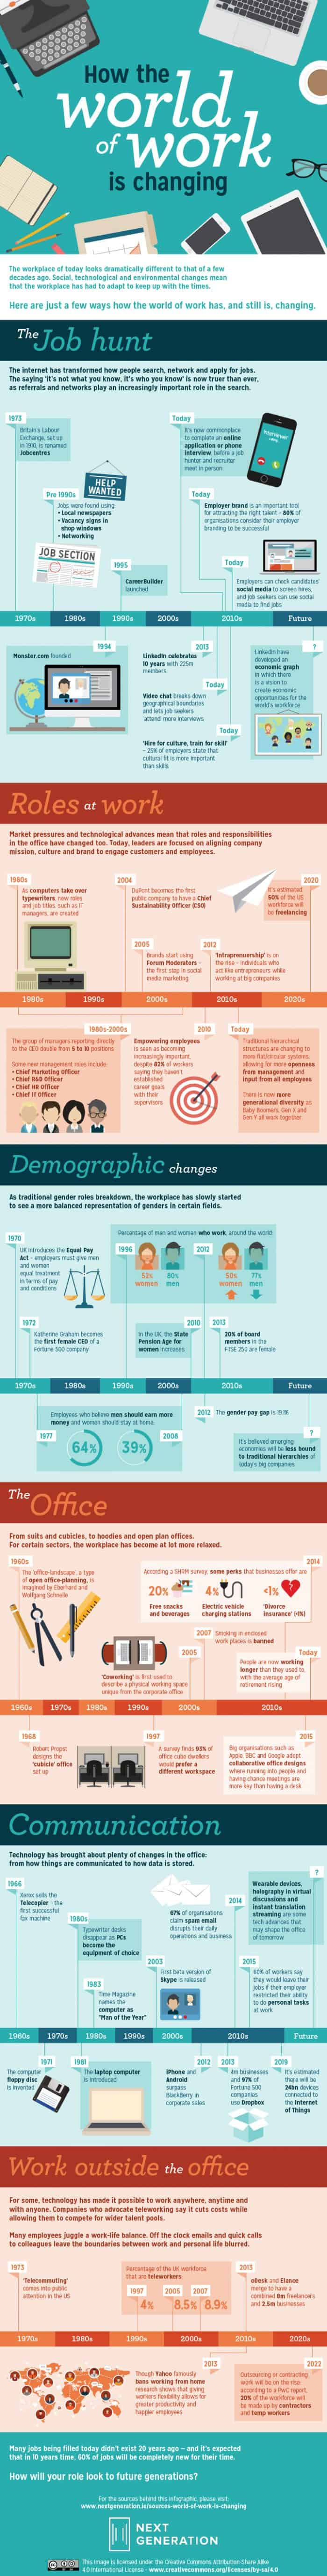 How the World of Work is Changing